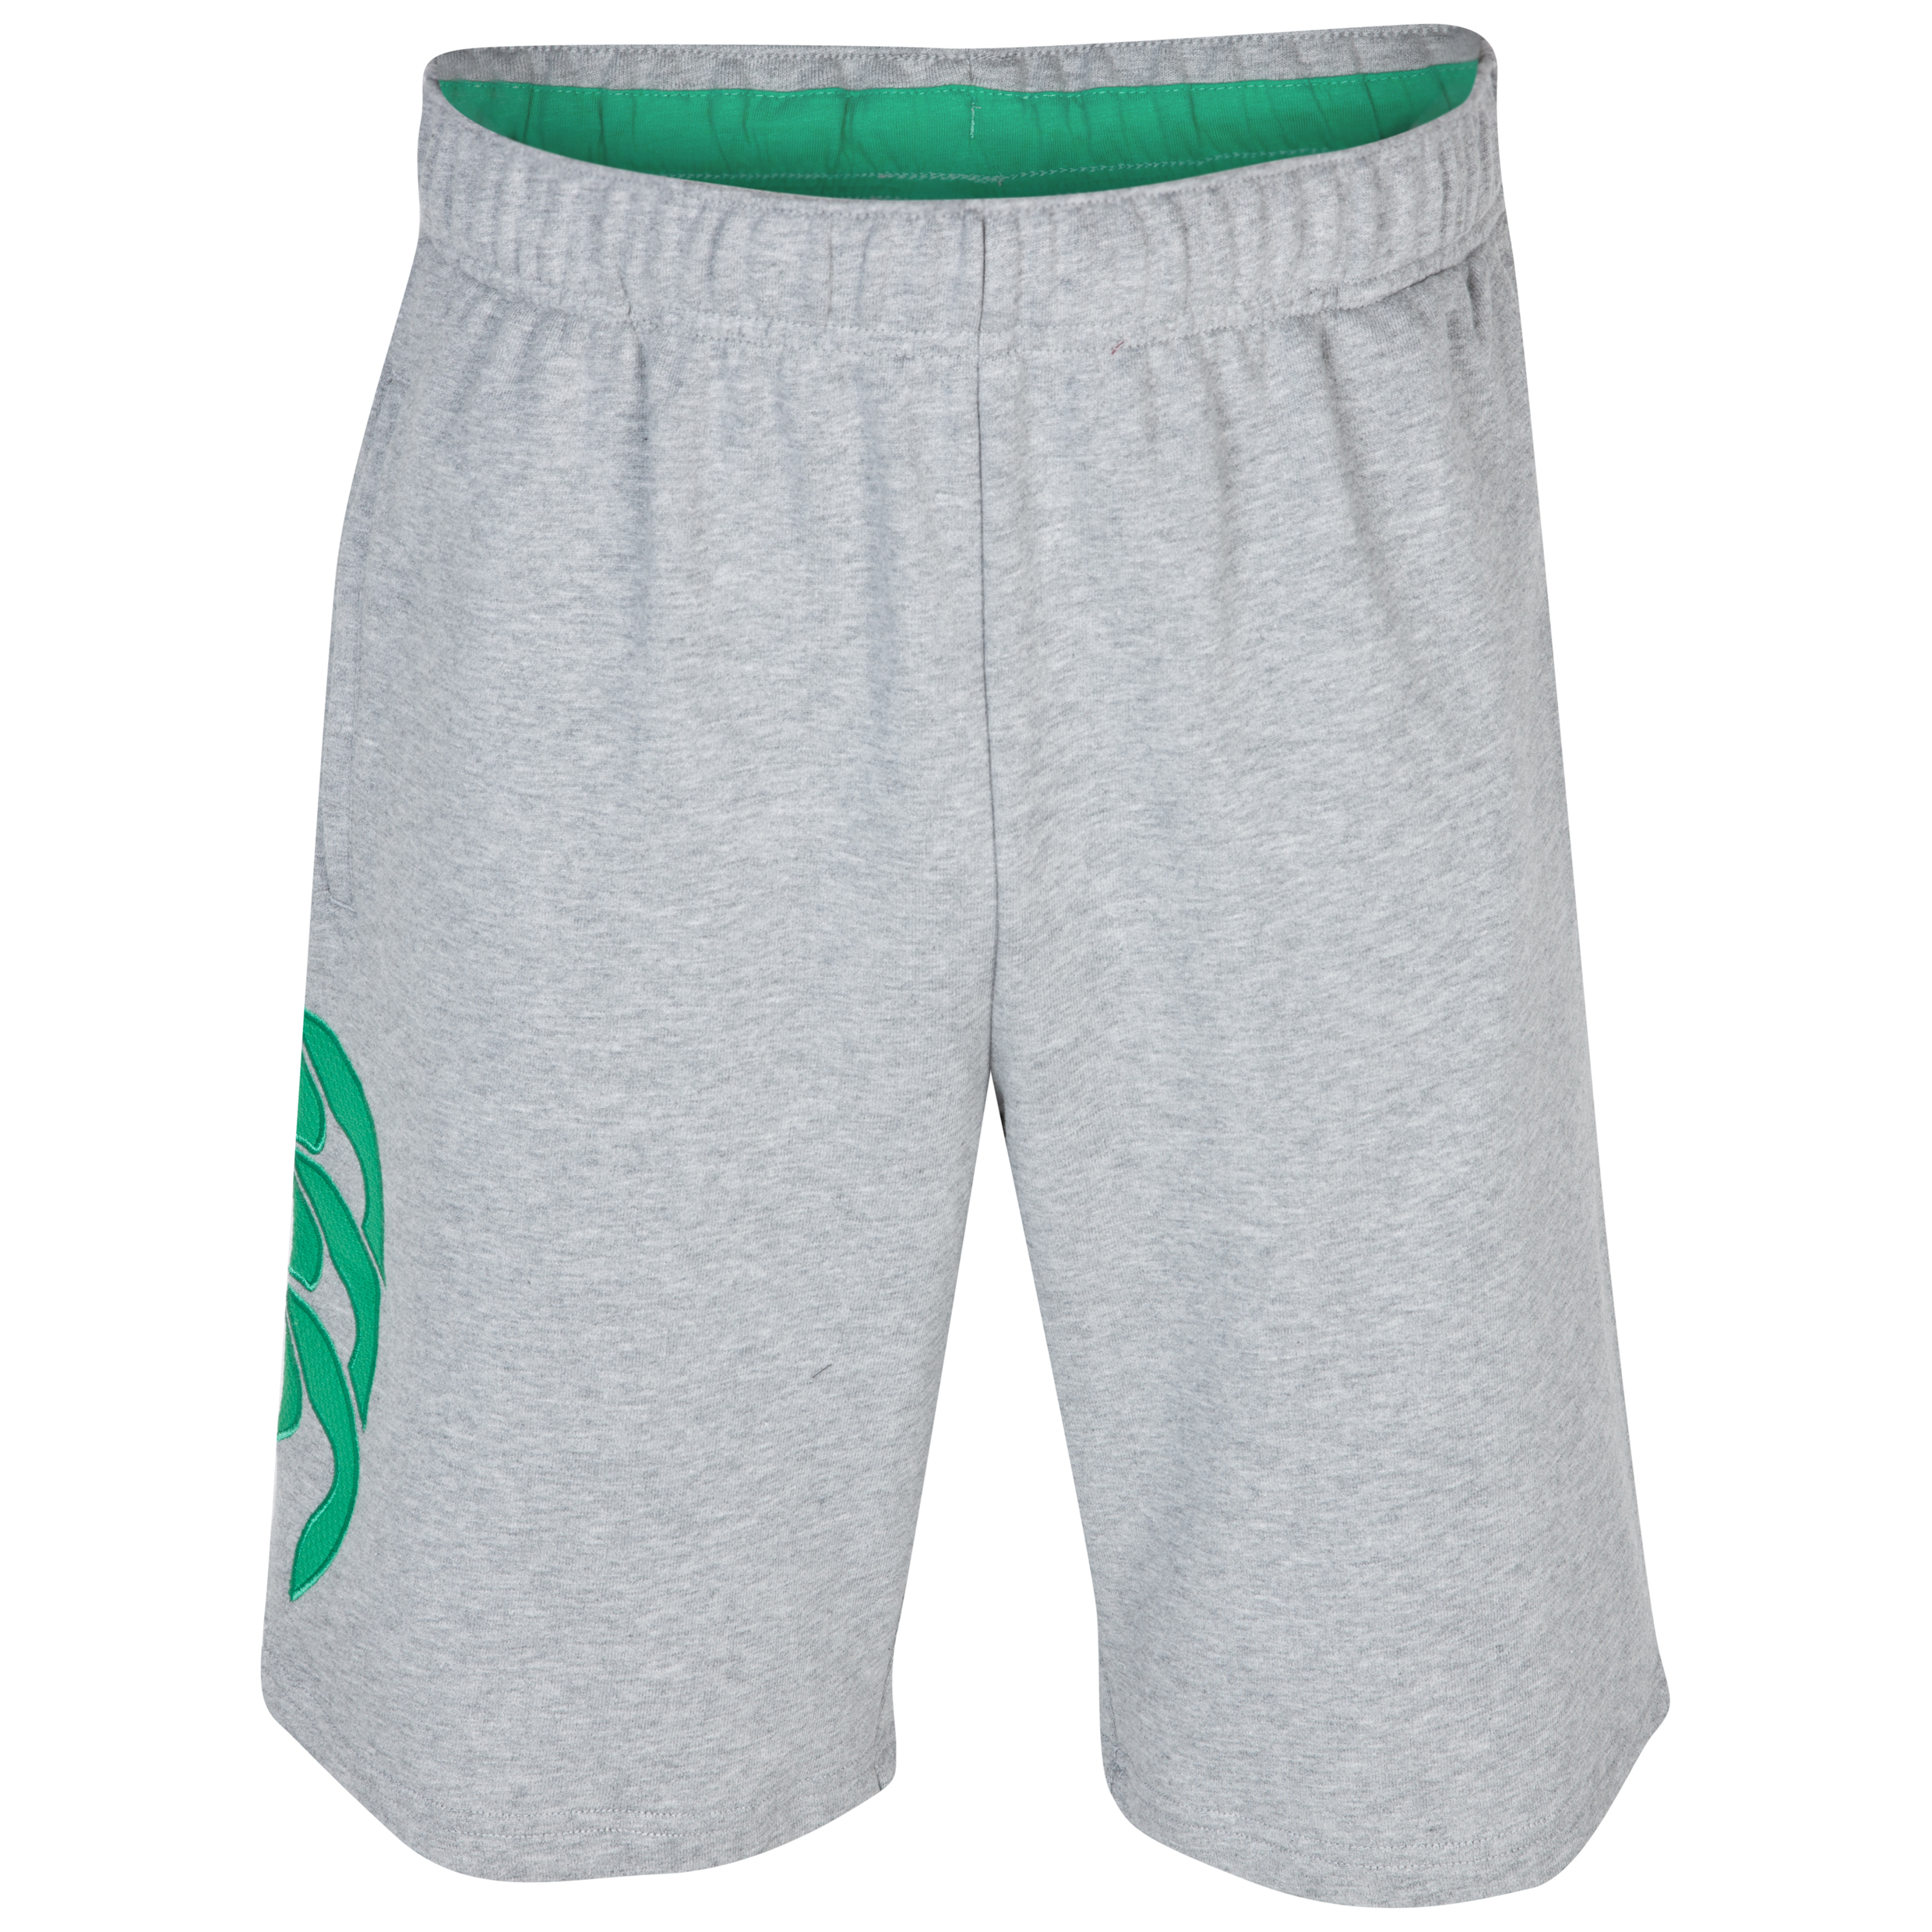 Canterbury Core Sweat Short - Classic Marl/Evergreen